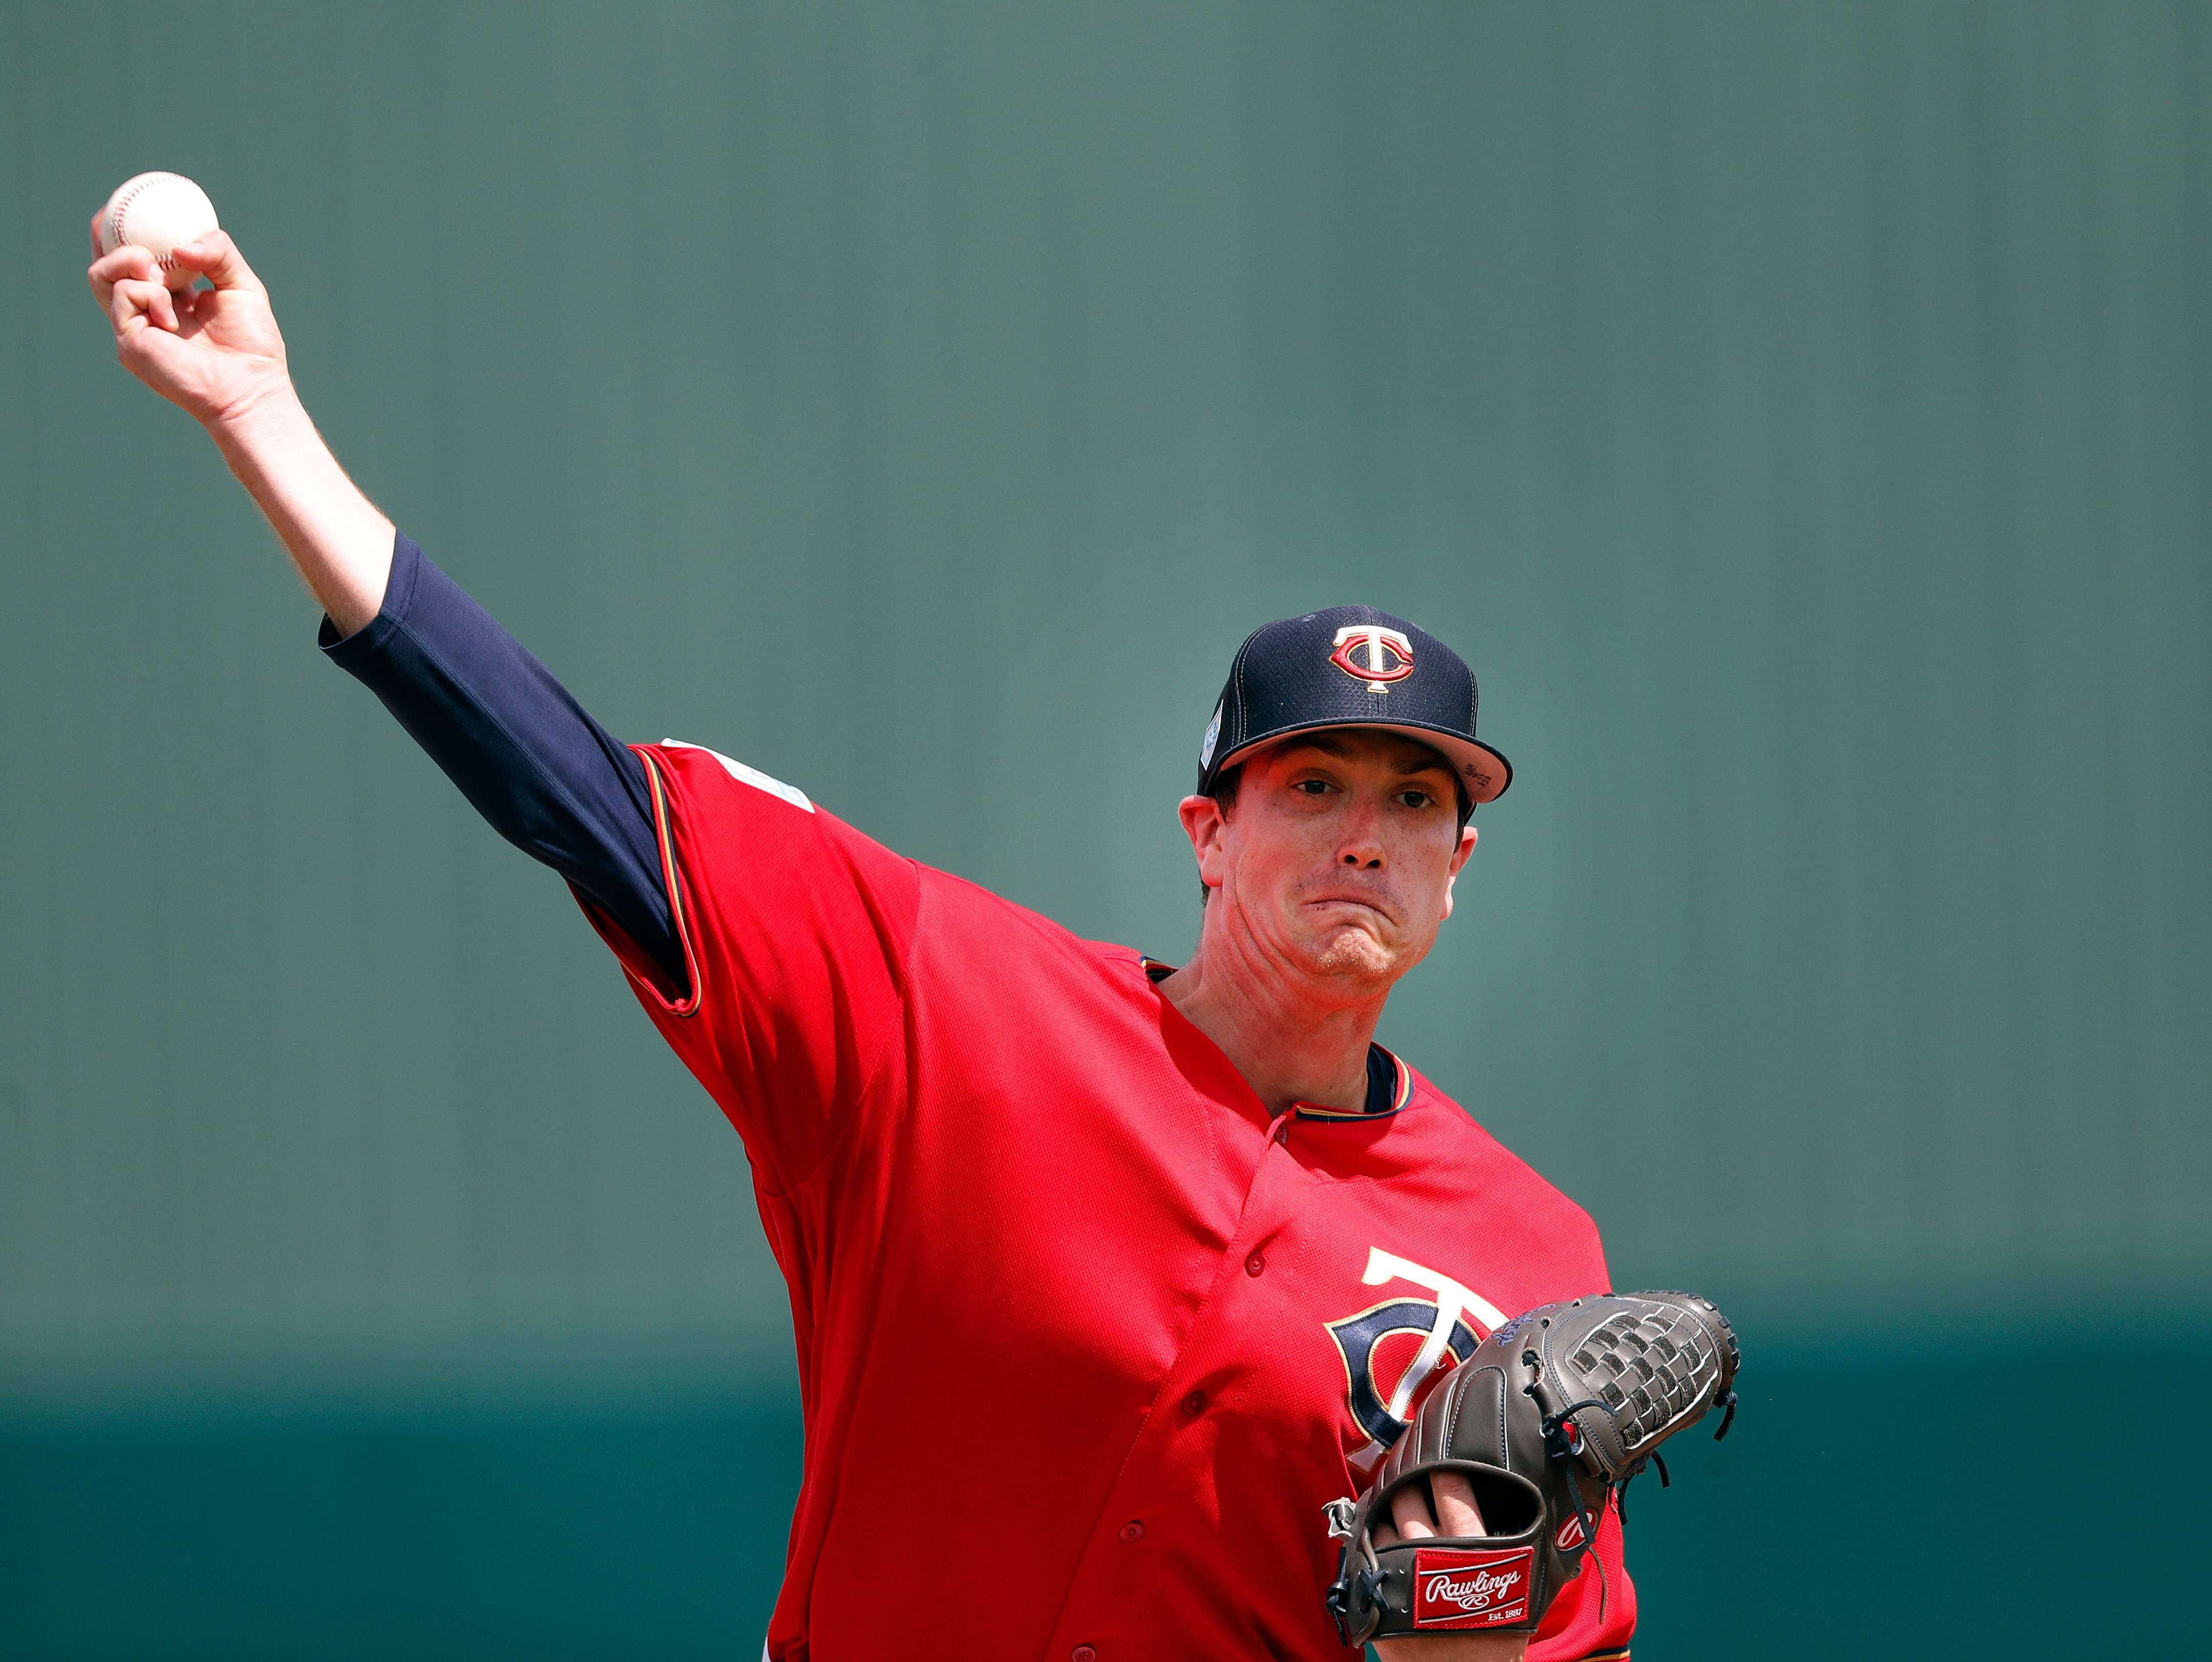 Minnesota Twins starting pitcher Kyle Gibson (44) warms up before facing Detroit Tigers in a spring training baseball game Monday, March 11, 2019, in Fort Myers, Fla.